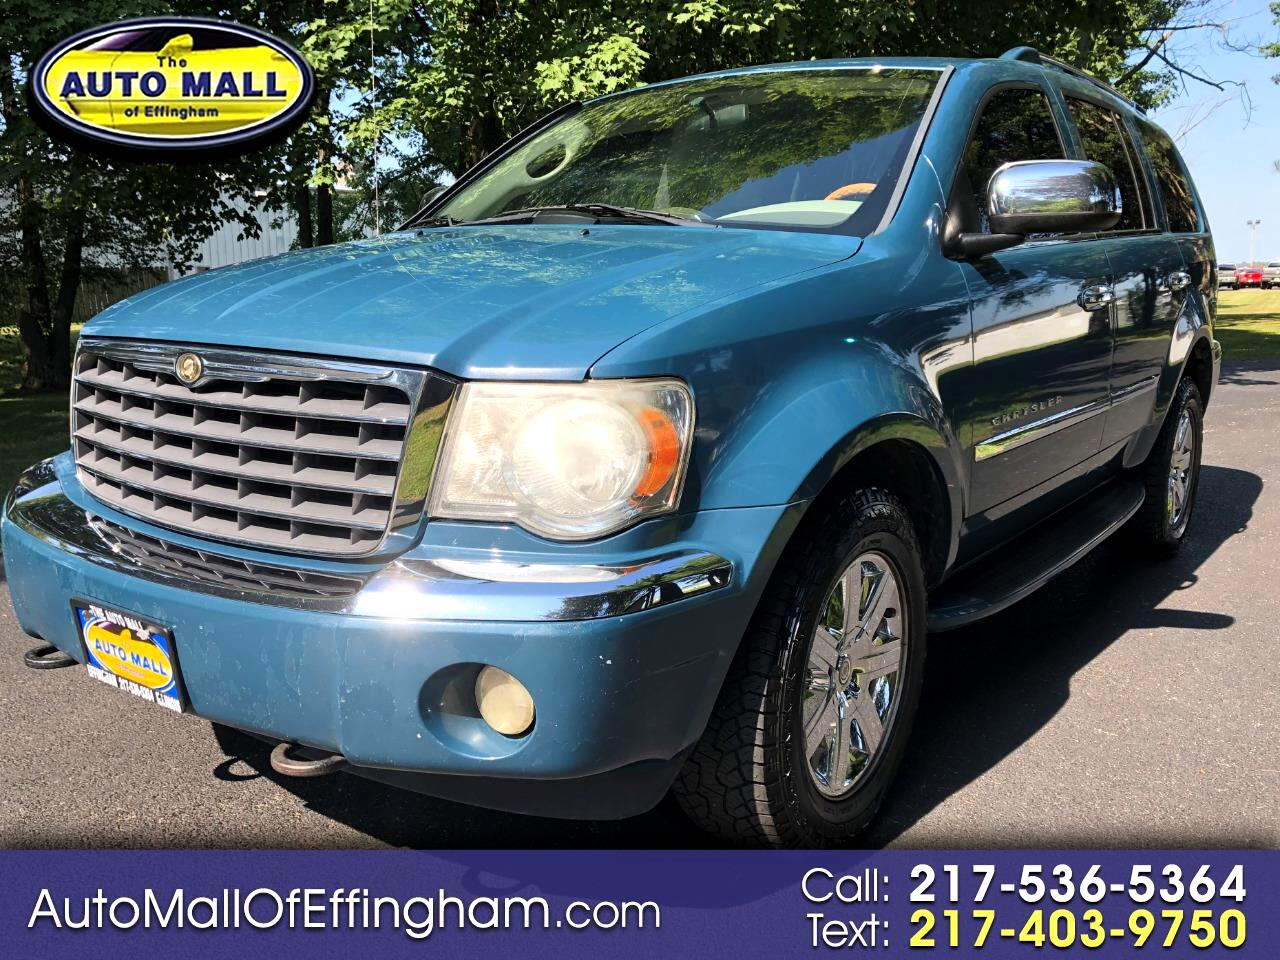 2009 Chrysler Aspen AWD 4dr Limited